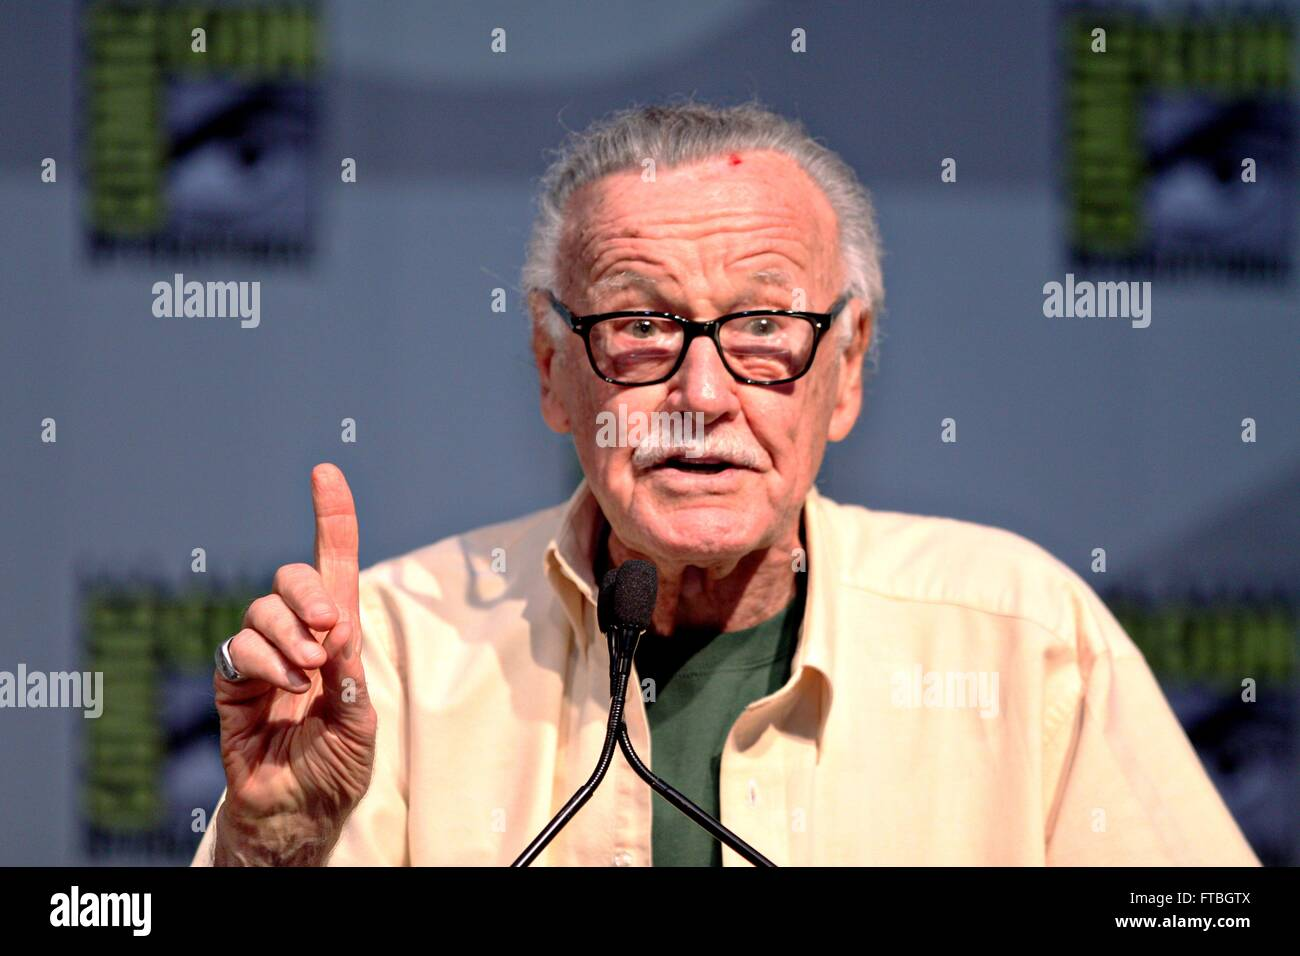 Comic book author and former head of Marvel Comics Stan Lee during the 2010 San Diego Comic Con July 23, 2010 in - Stock Image